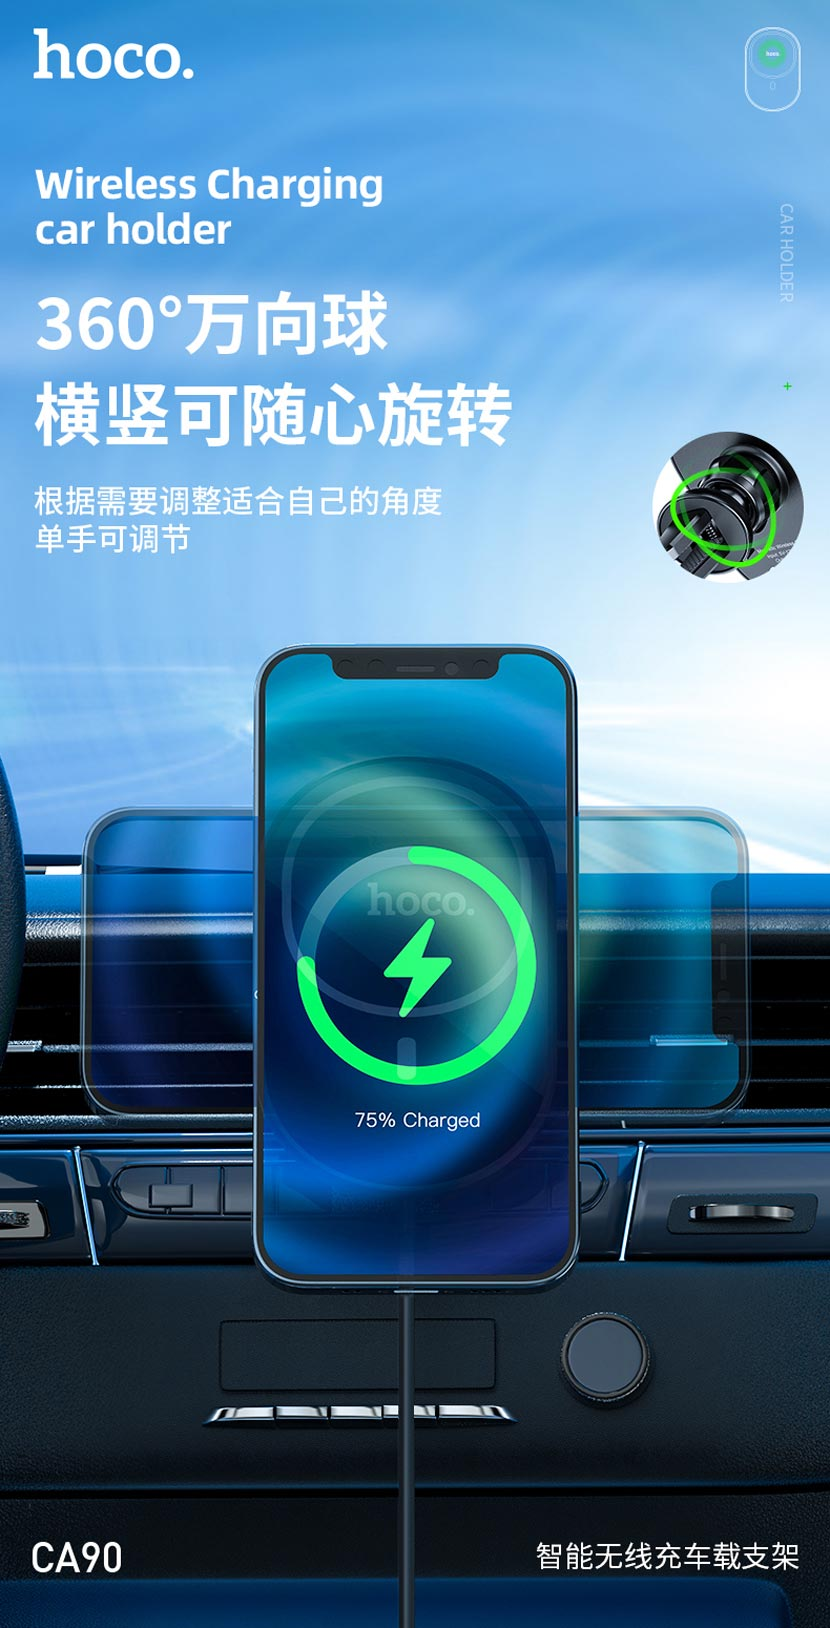 hoco news ca90 powerful magnetic car holder with wireless charging rotation cn